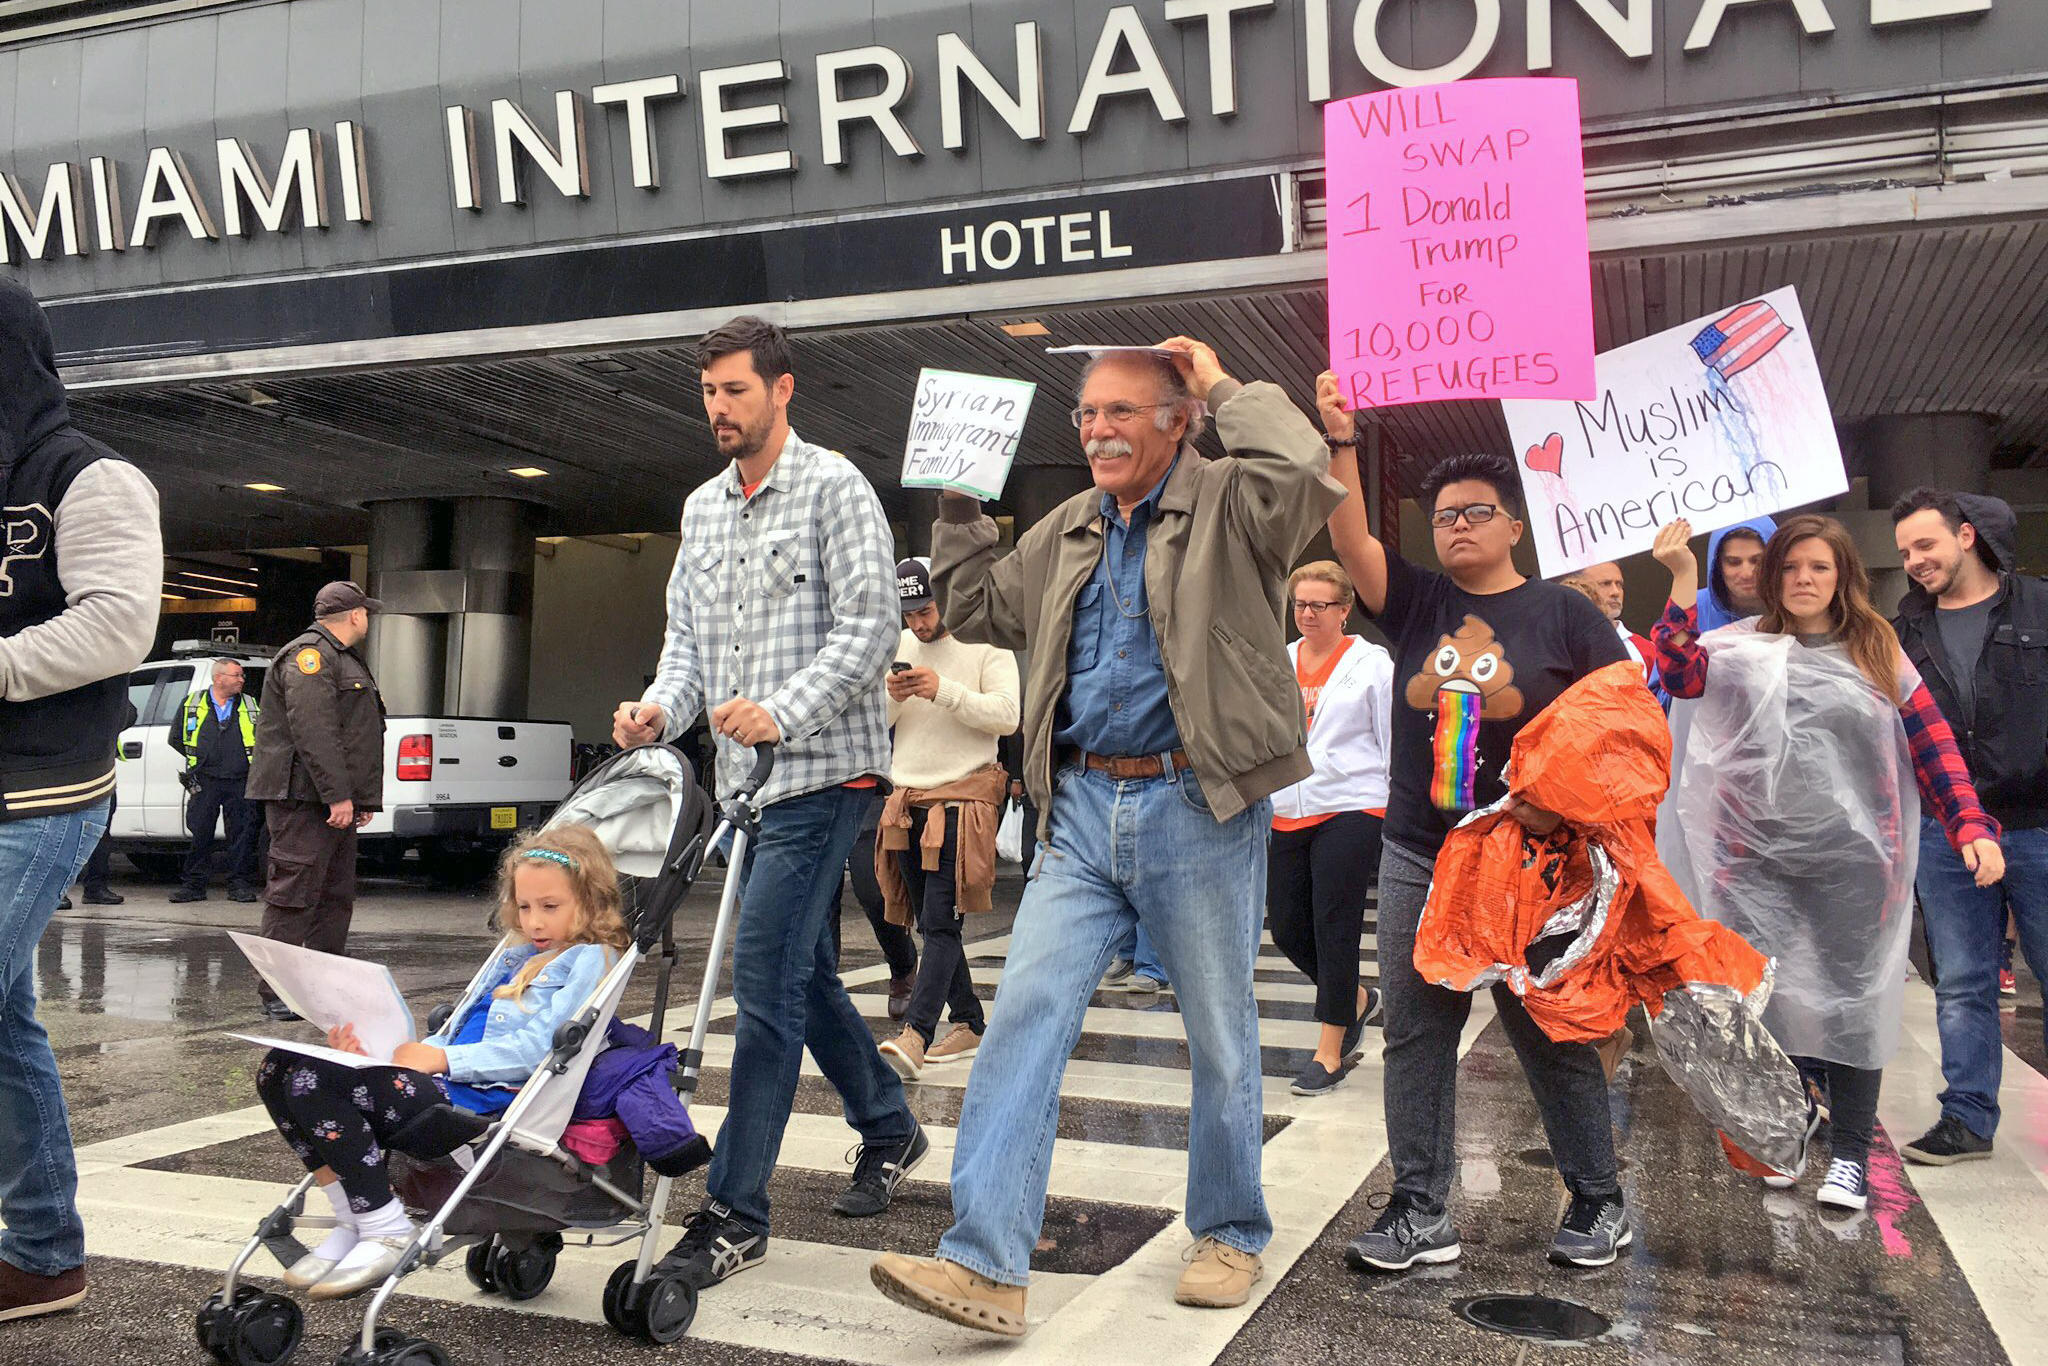 Syrian family decries trumps ban on refugees - A Family With Syrian Roots Protest Against Trump S Executive Order To Limit Refugee From Entering The U S At Miami International Airport On Jan 29 2017